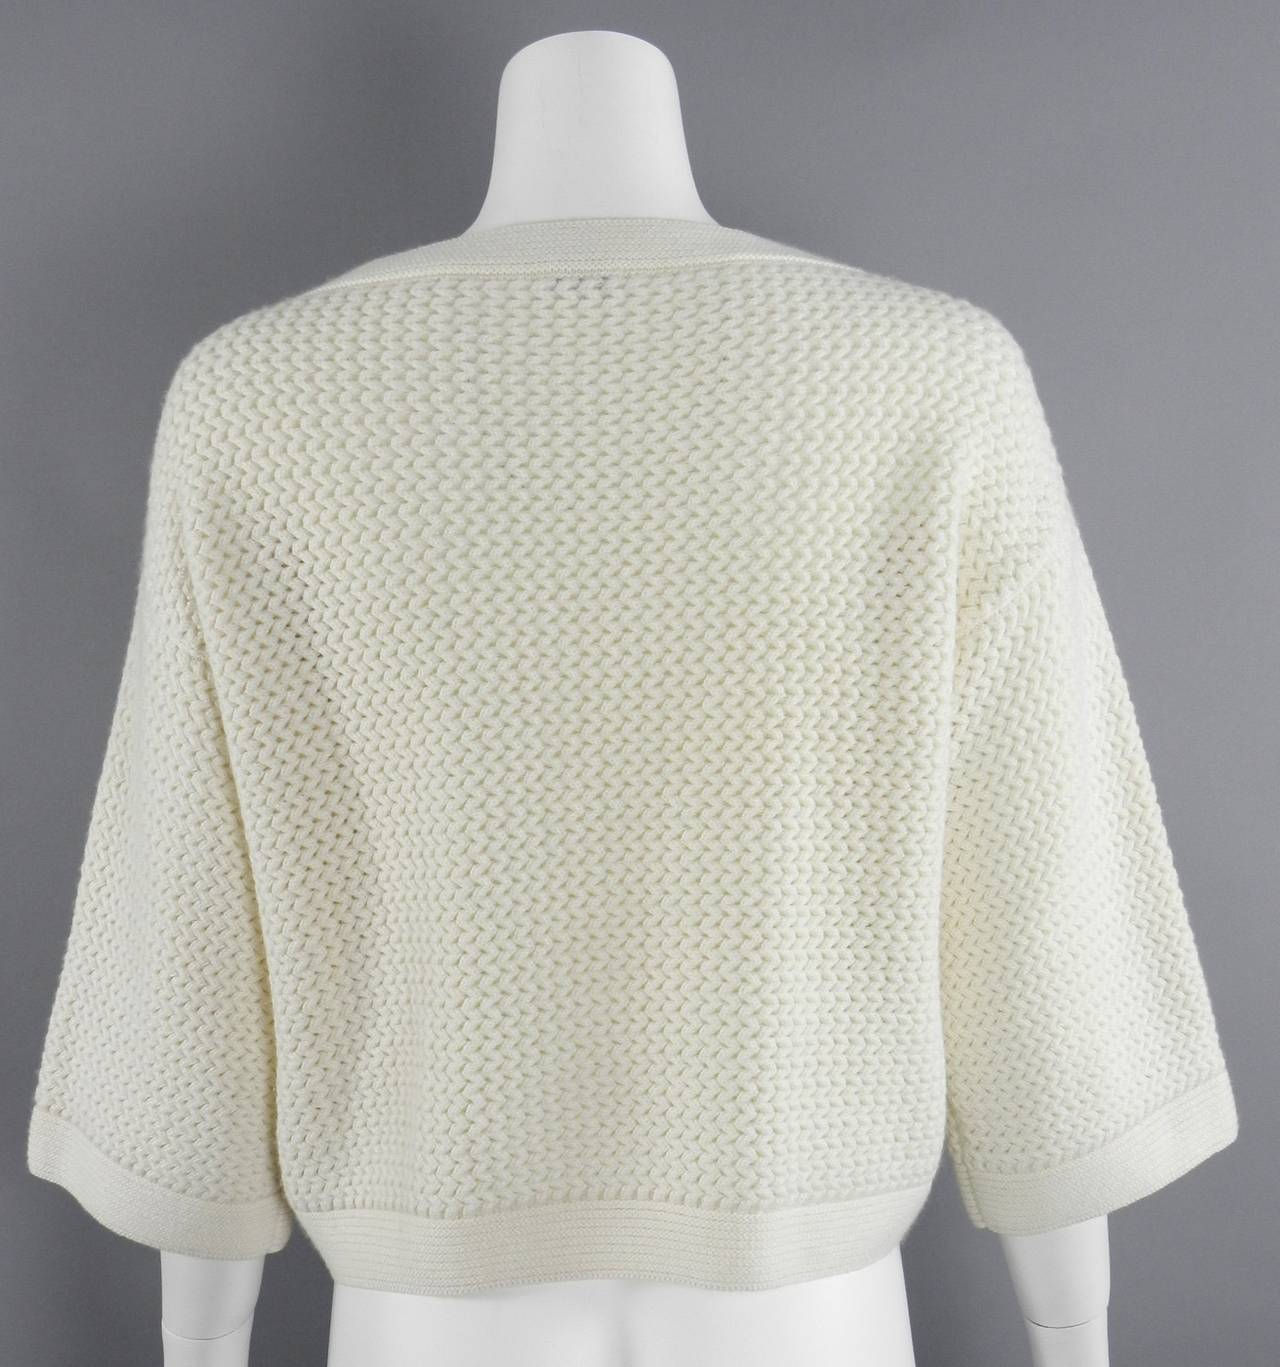 Chanel Ivory Cashmere Cropped Sweater Top 3